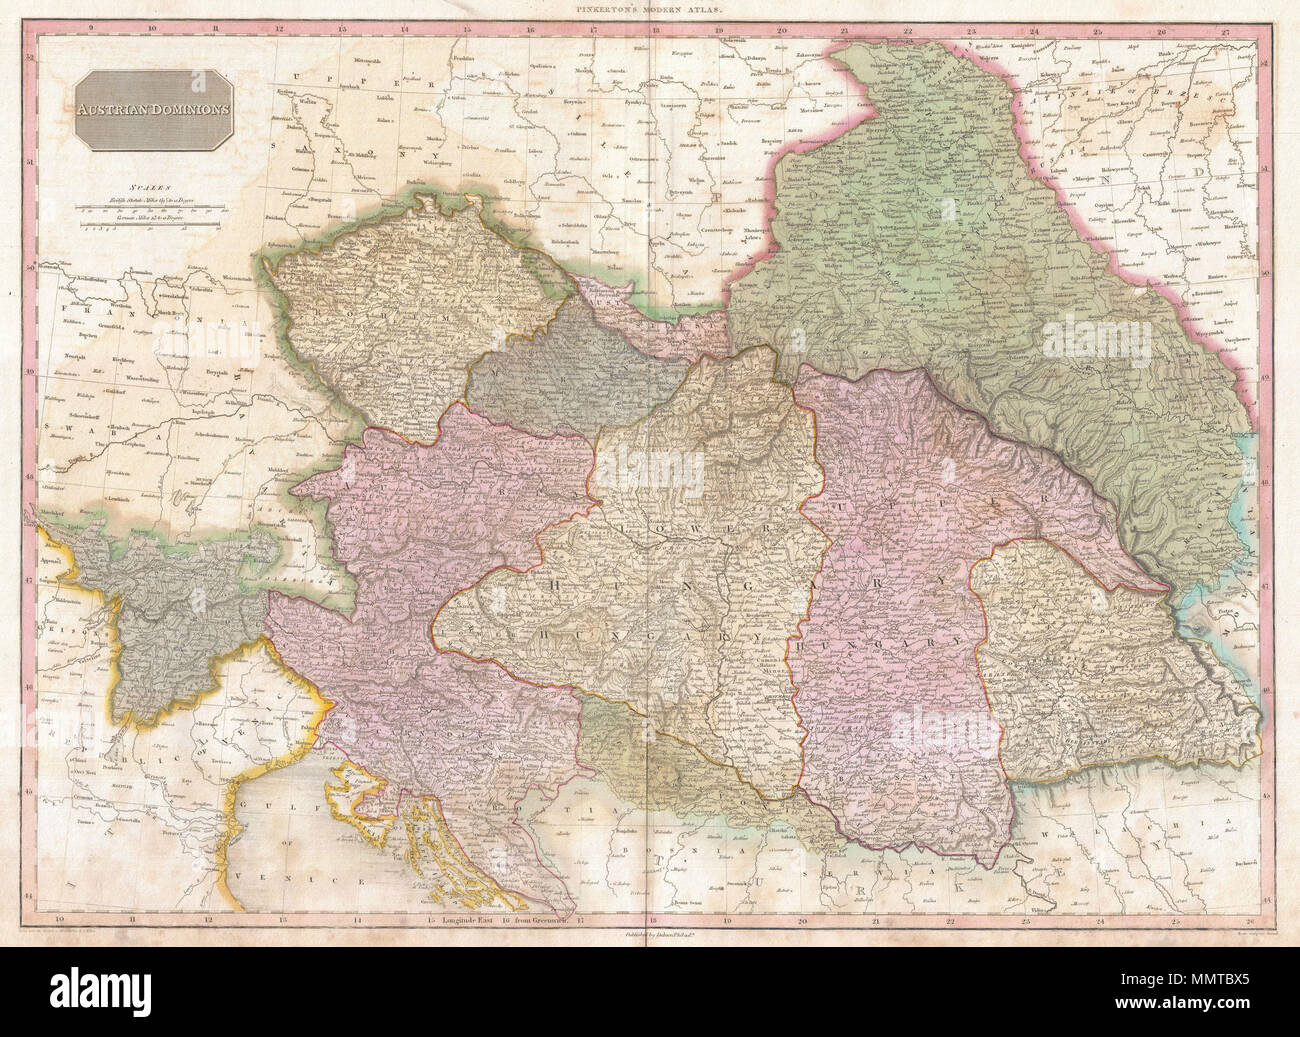 english pinkertons extraordinary 1818 map of the austrian dominions covers the austro hungarian empire at the height of its influence